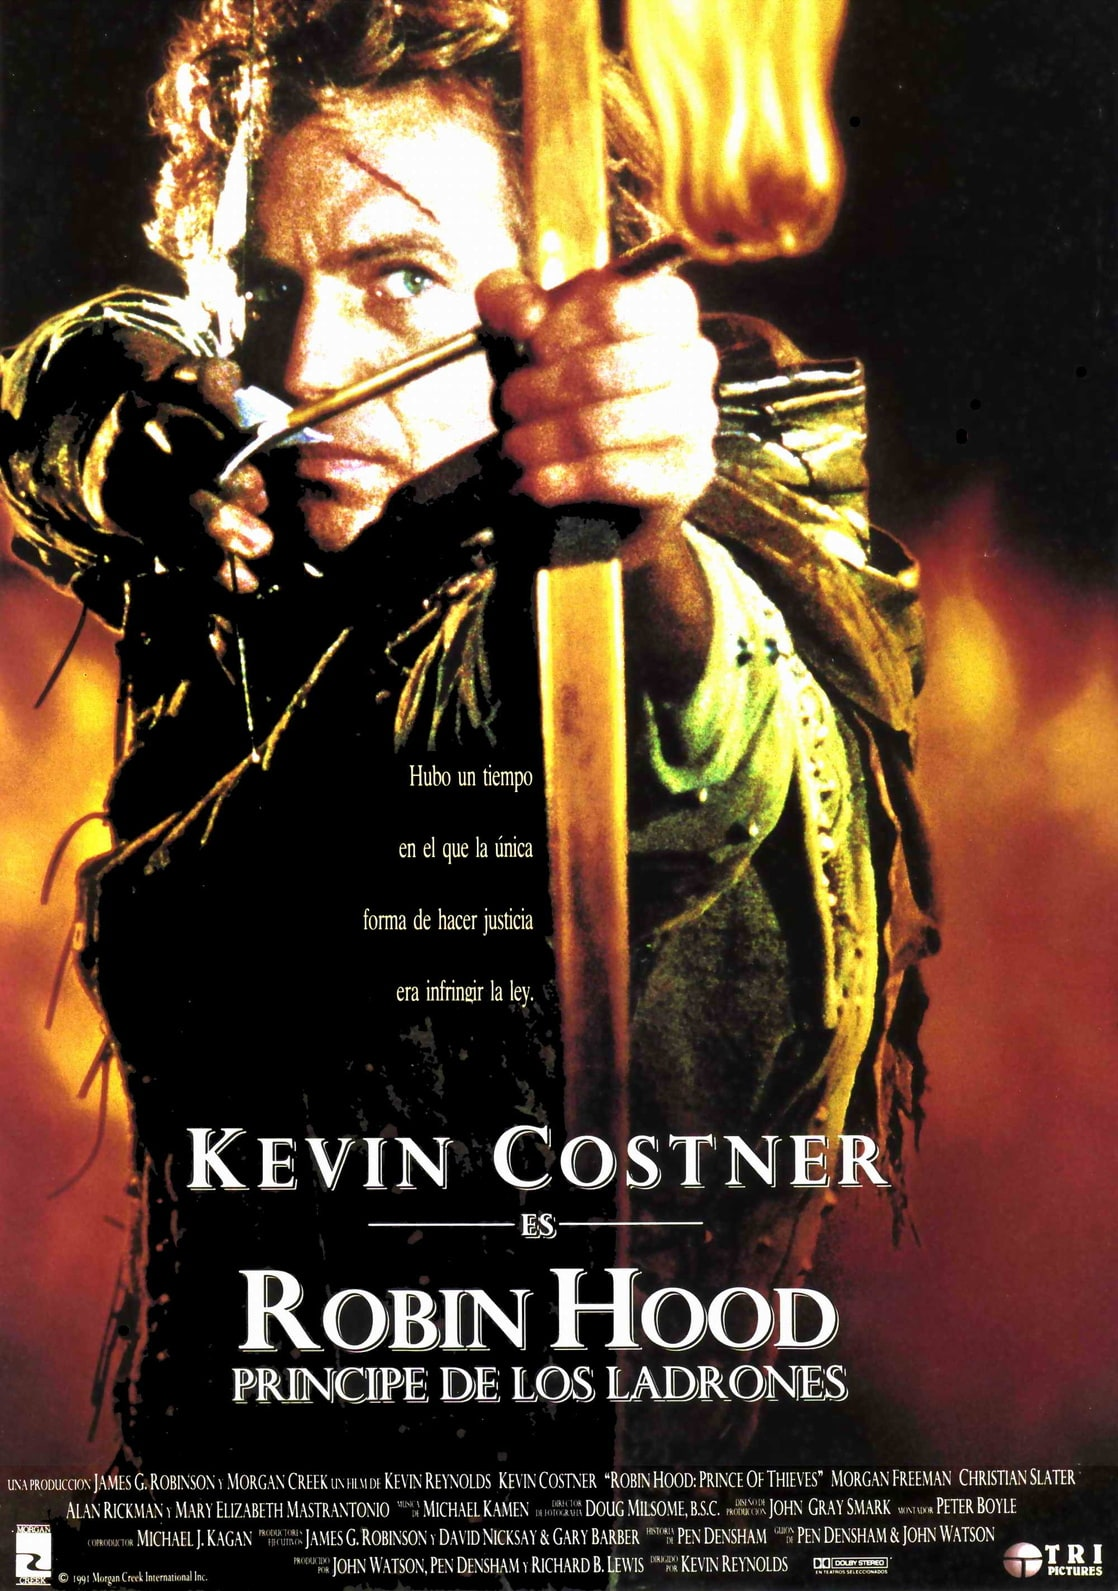 essay on robin hood prince of theives  · get access to robin hood prince of thieves film study essays only from anti essays listed results 1 - 30 get studying today and get the grades you want.